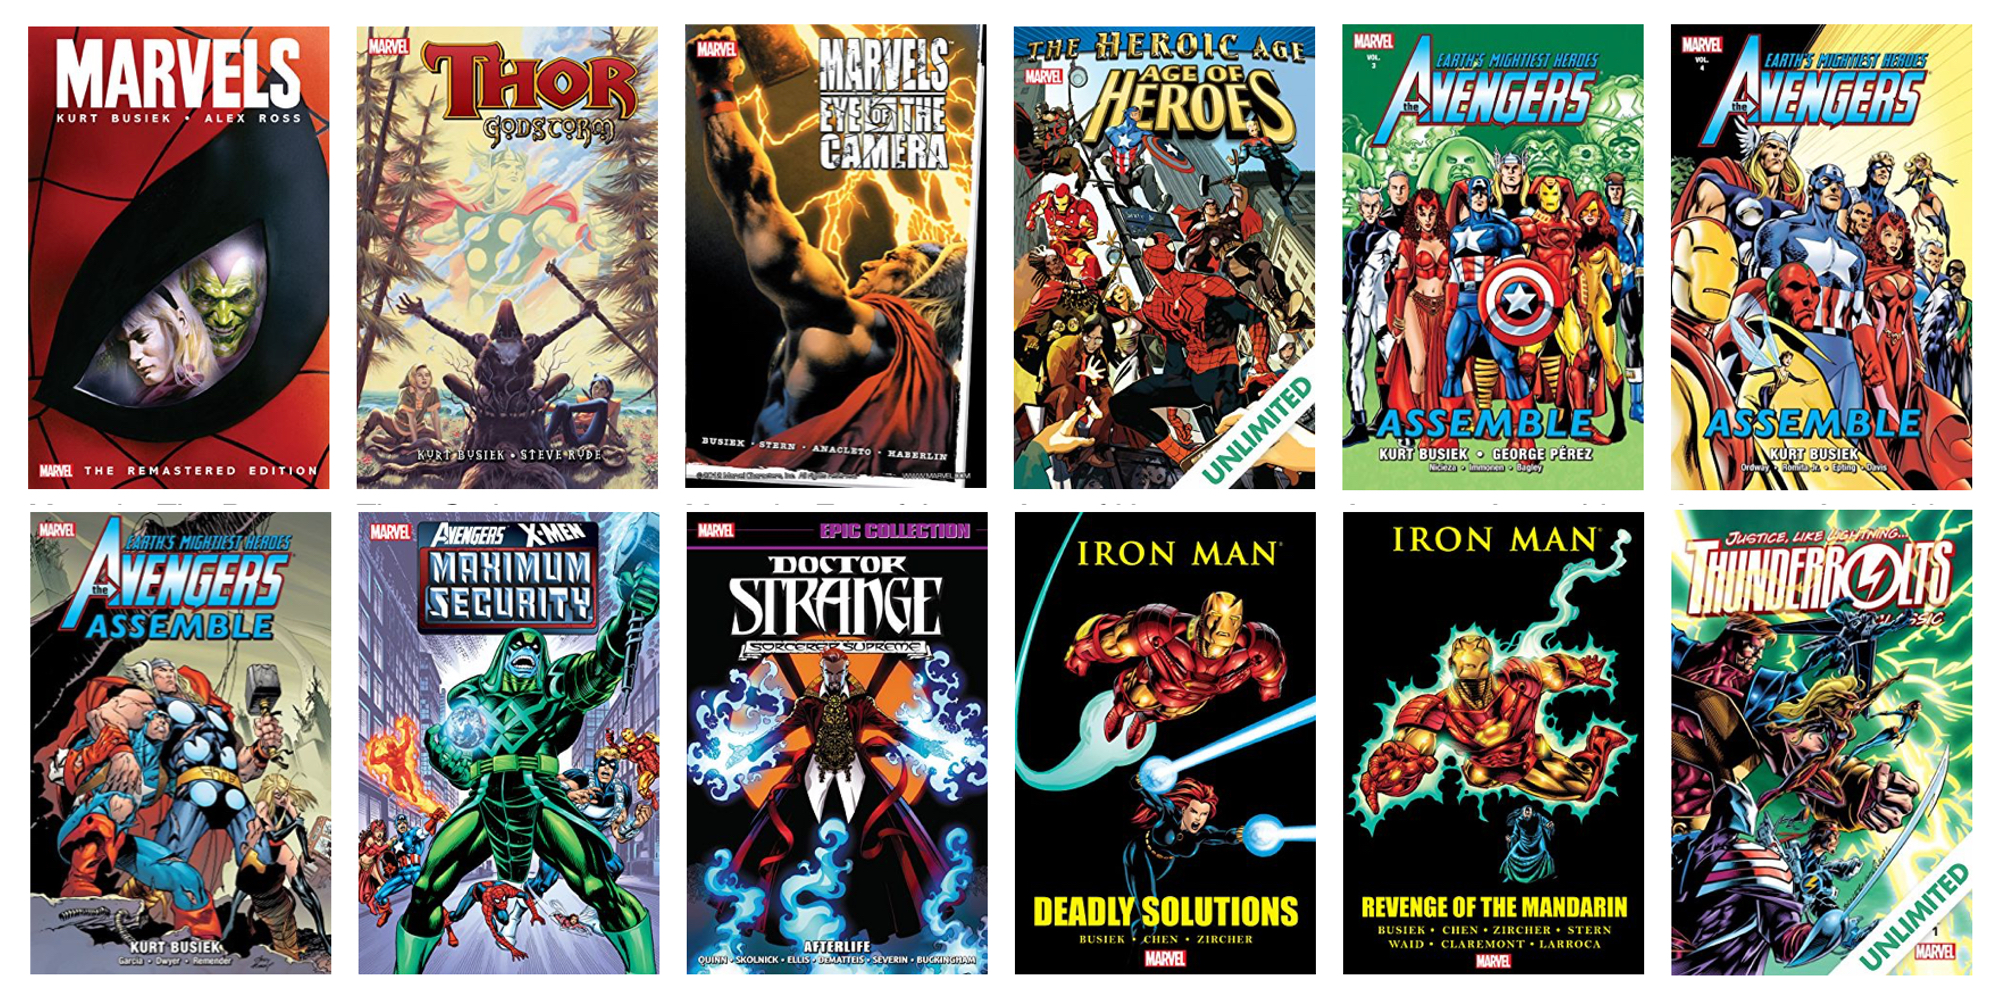 ComiXology takes up to 67% off Iron Man, Doctor Stange and other Marvel comics from $1, more